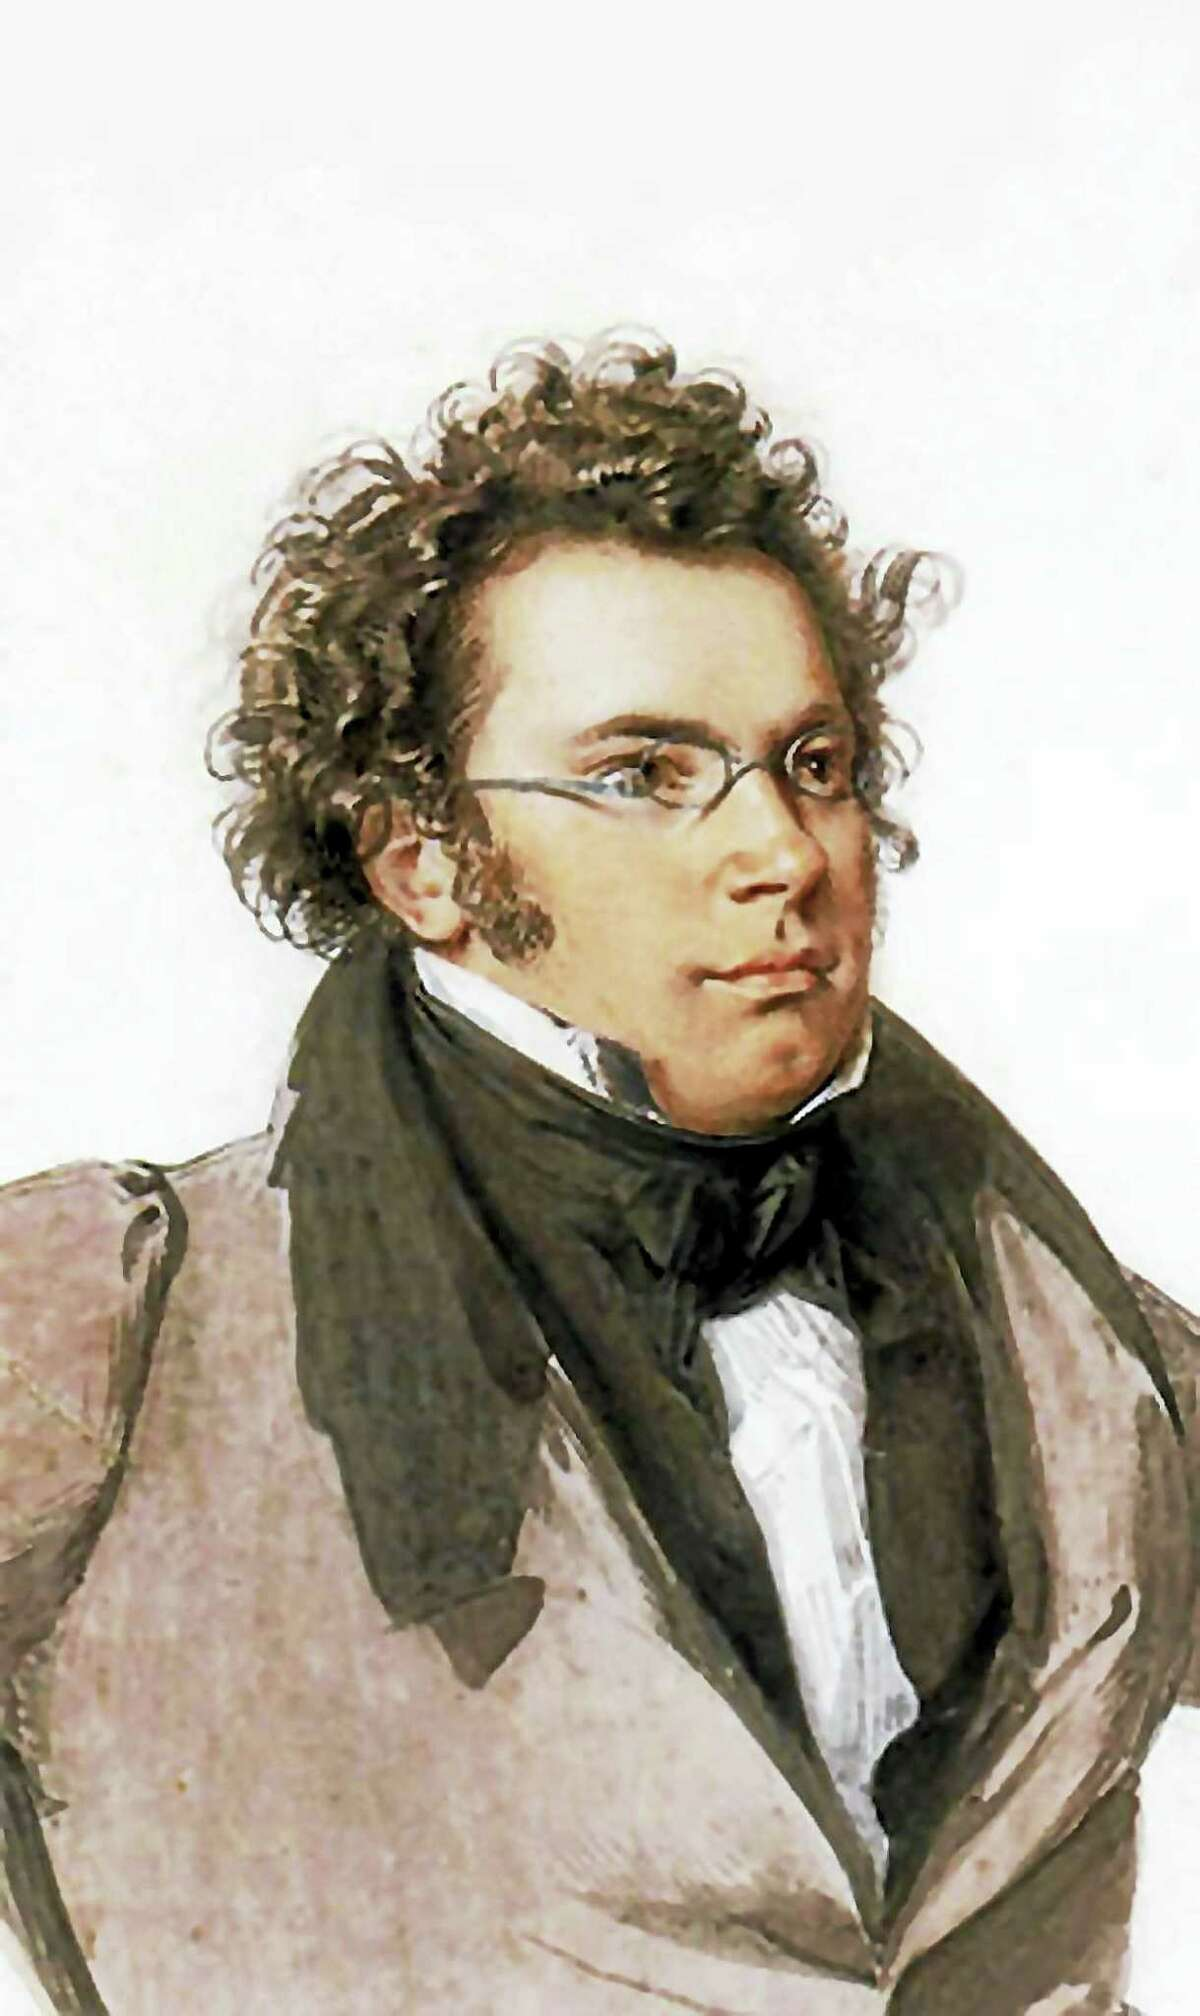 Franz Schubert, who died before his 32nd birthday.